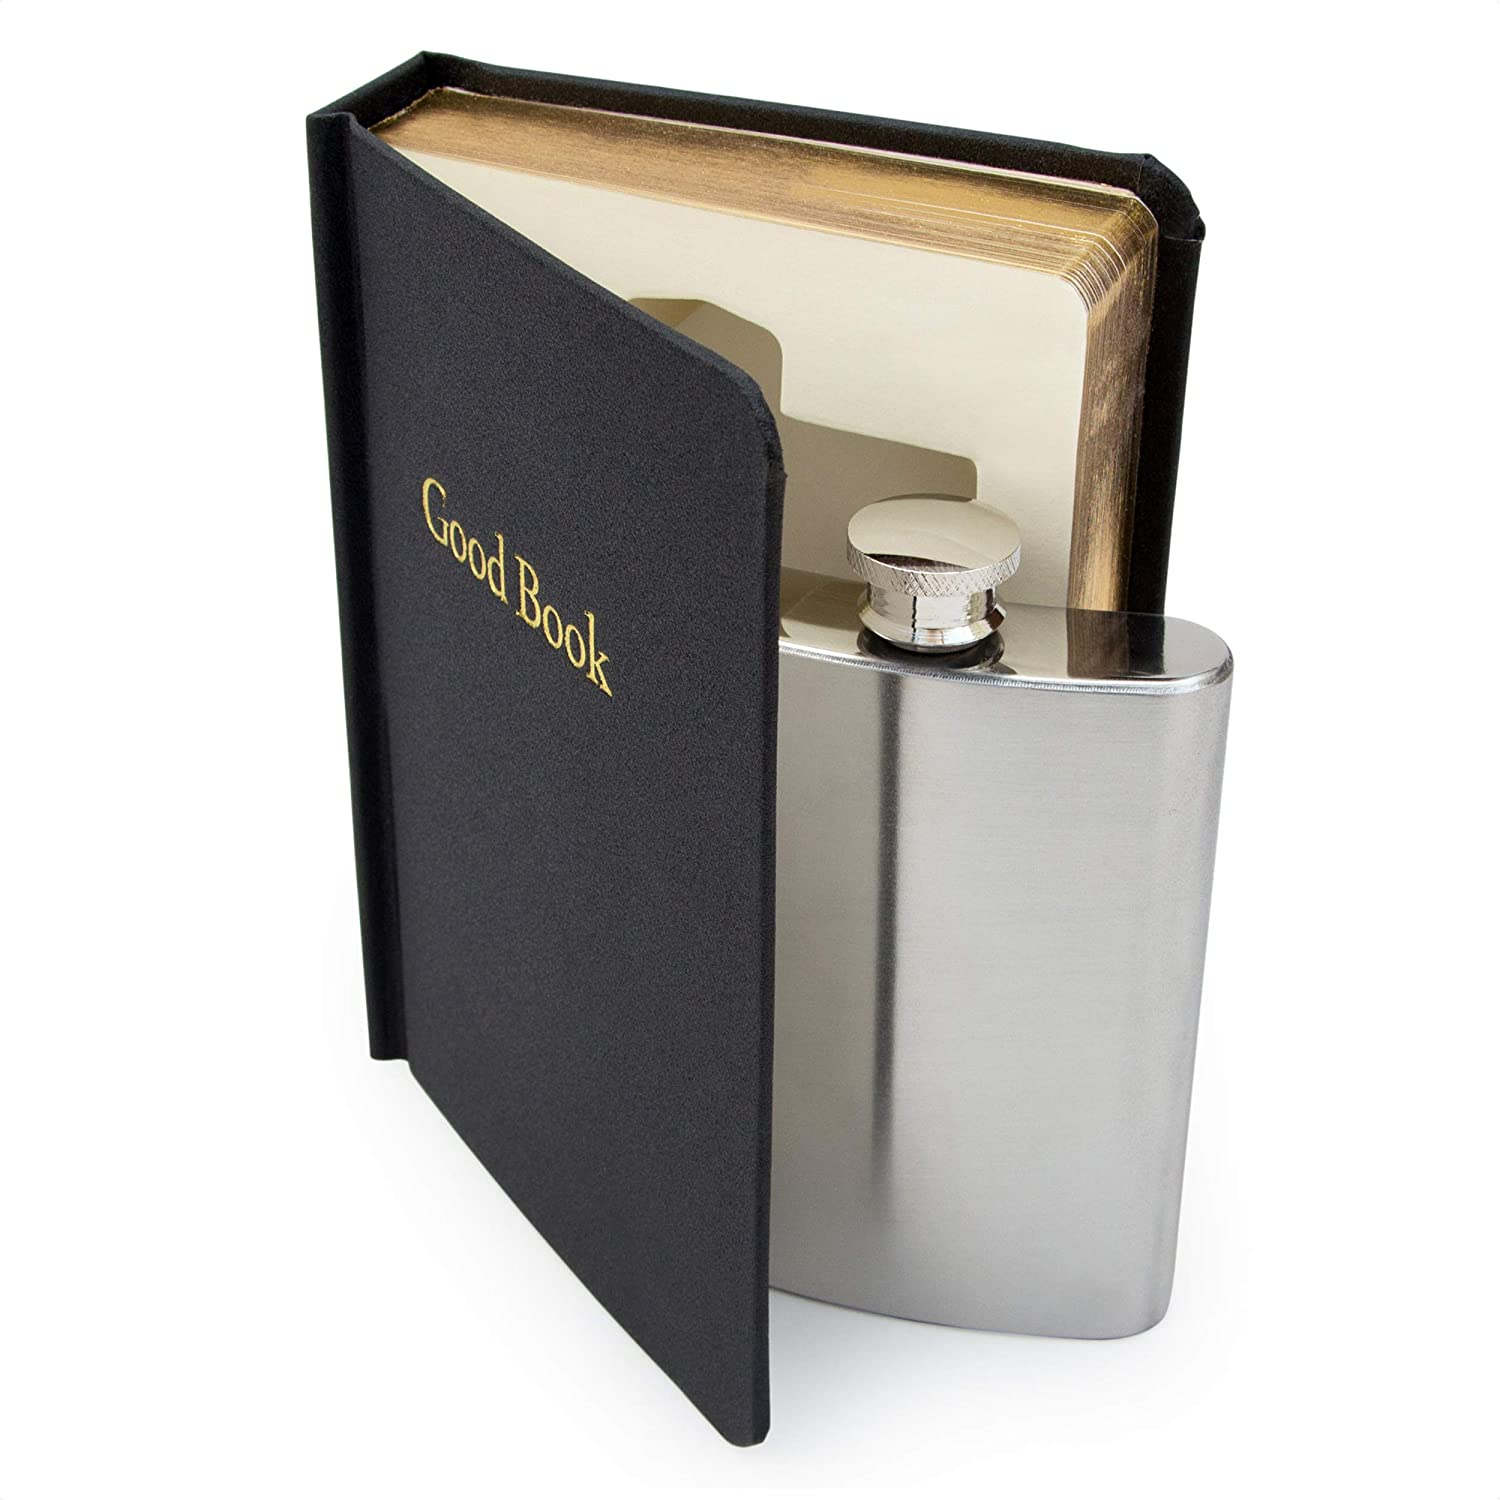 SUCK UK B Secret Hip Women & Men | Small Smuggle Your Booze | Alcohol Holy Water | 4 oz Stainless Steel Flask, Black